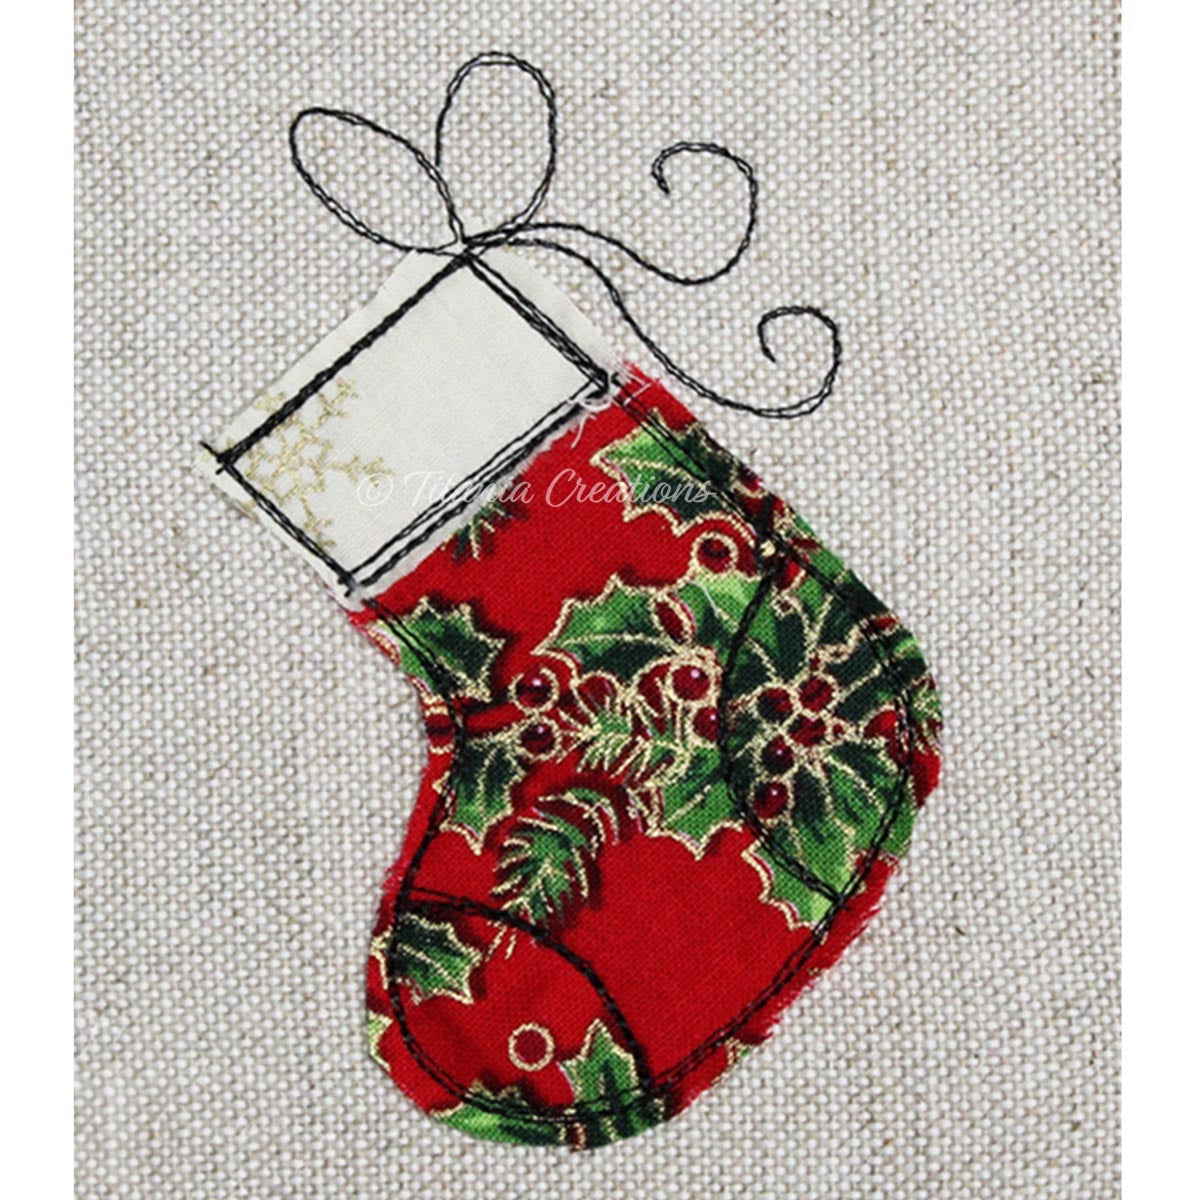 Raw Edge Applique Stocking 4x4 5x7